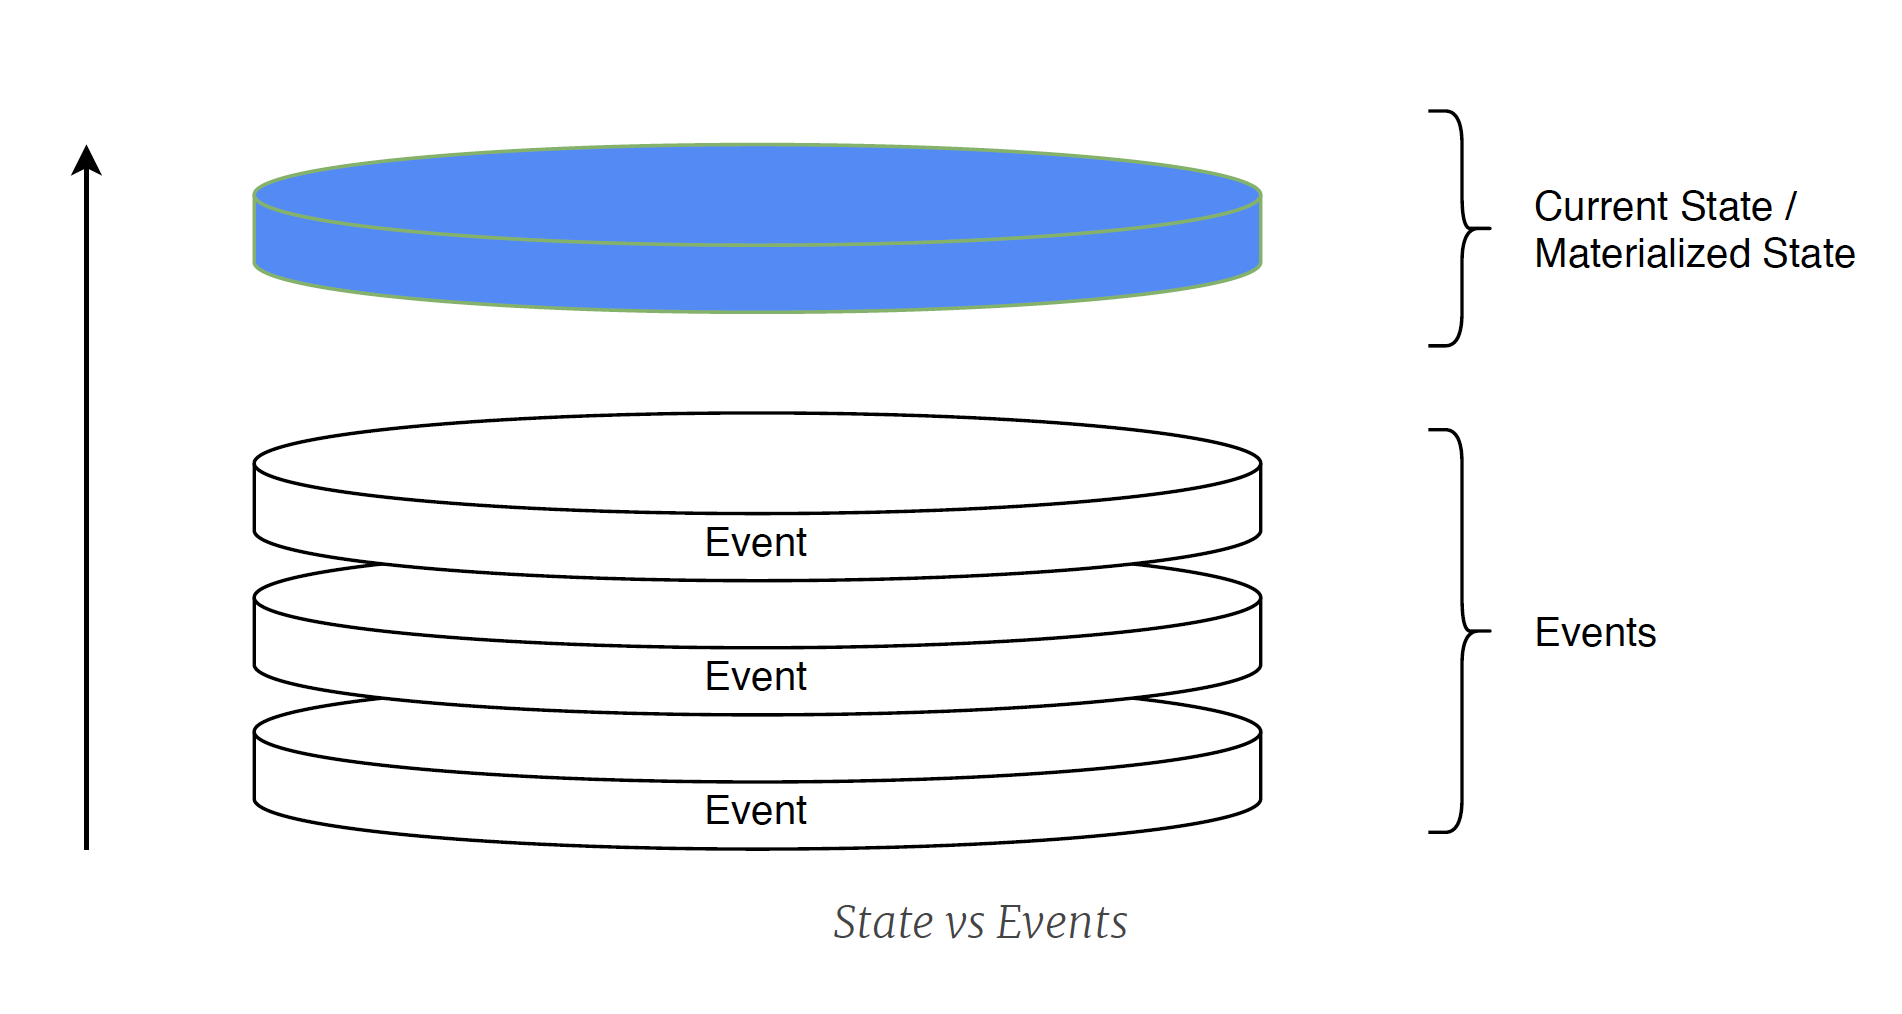 State vs Events